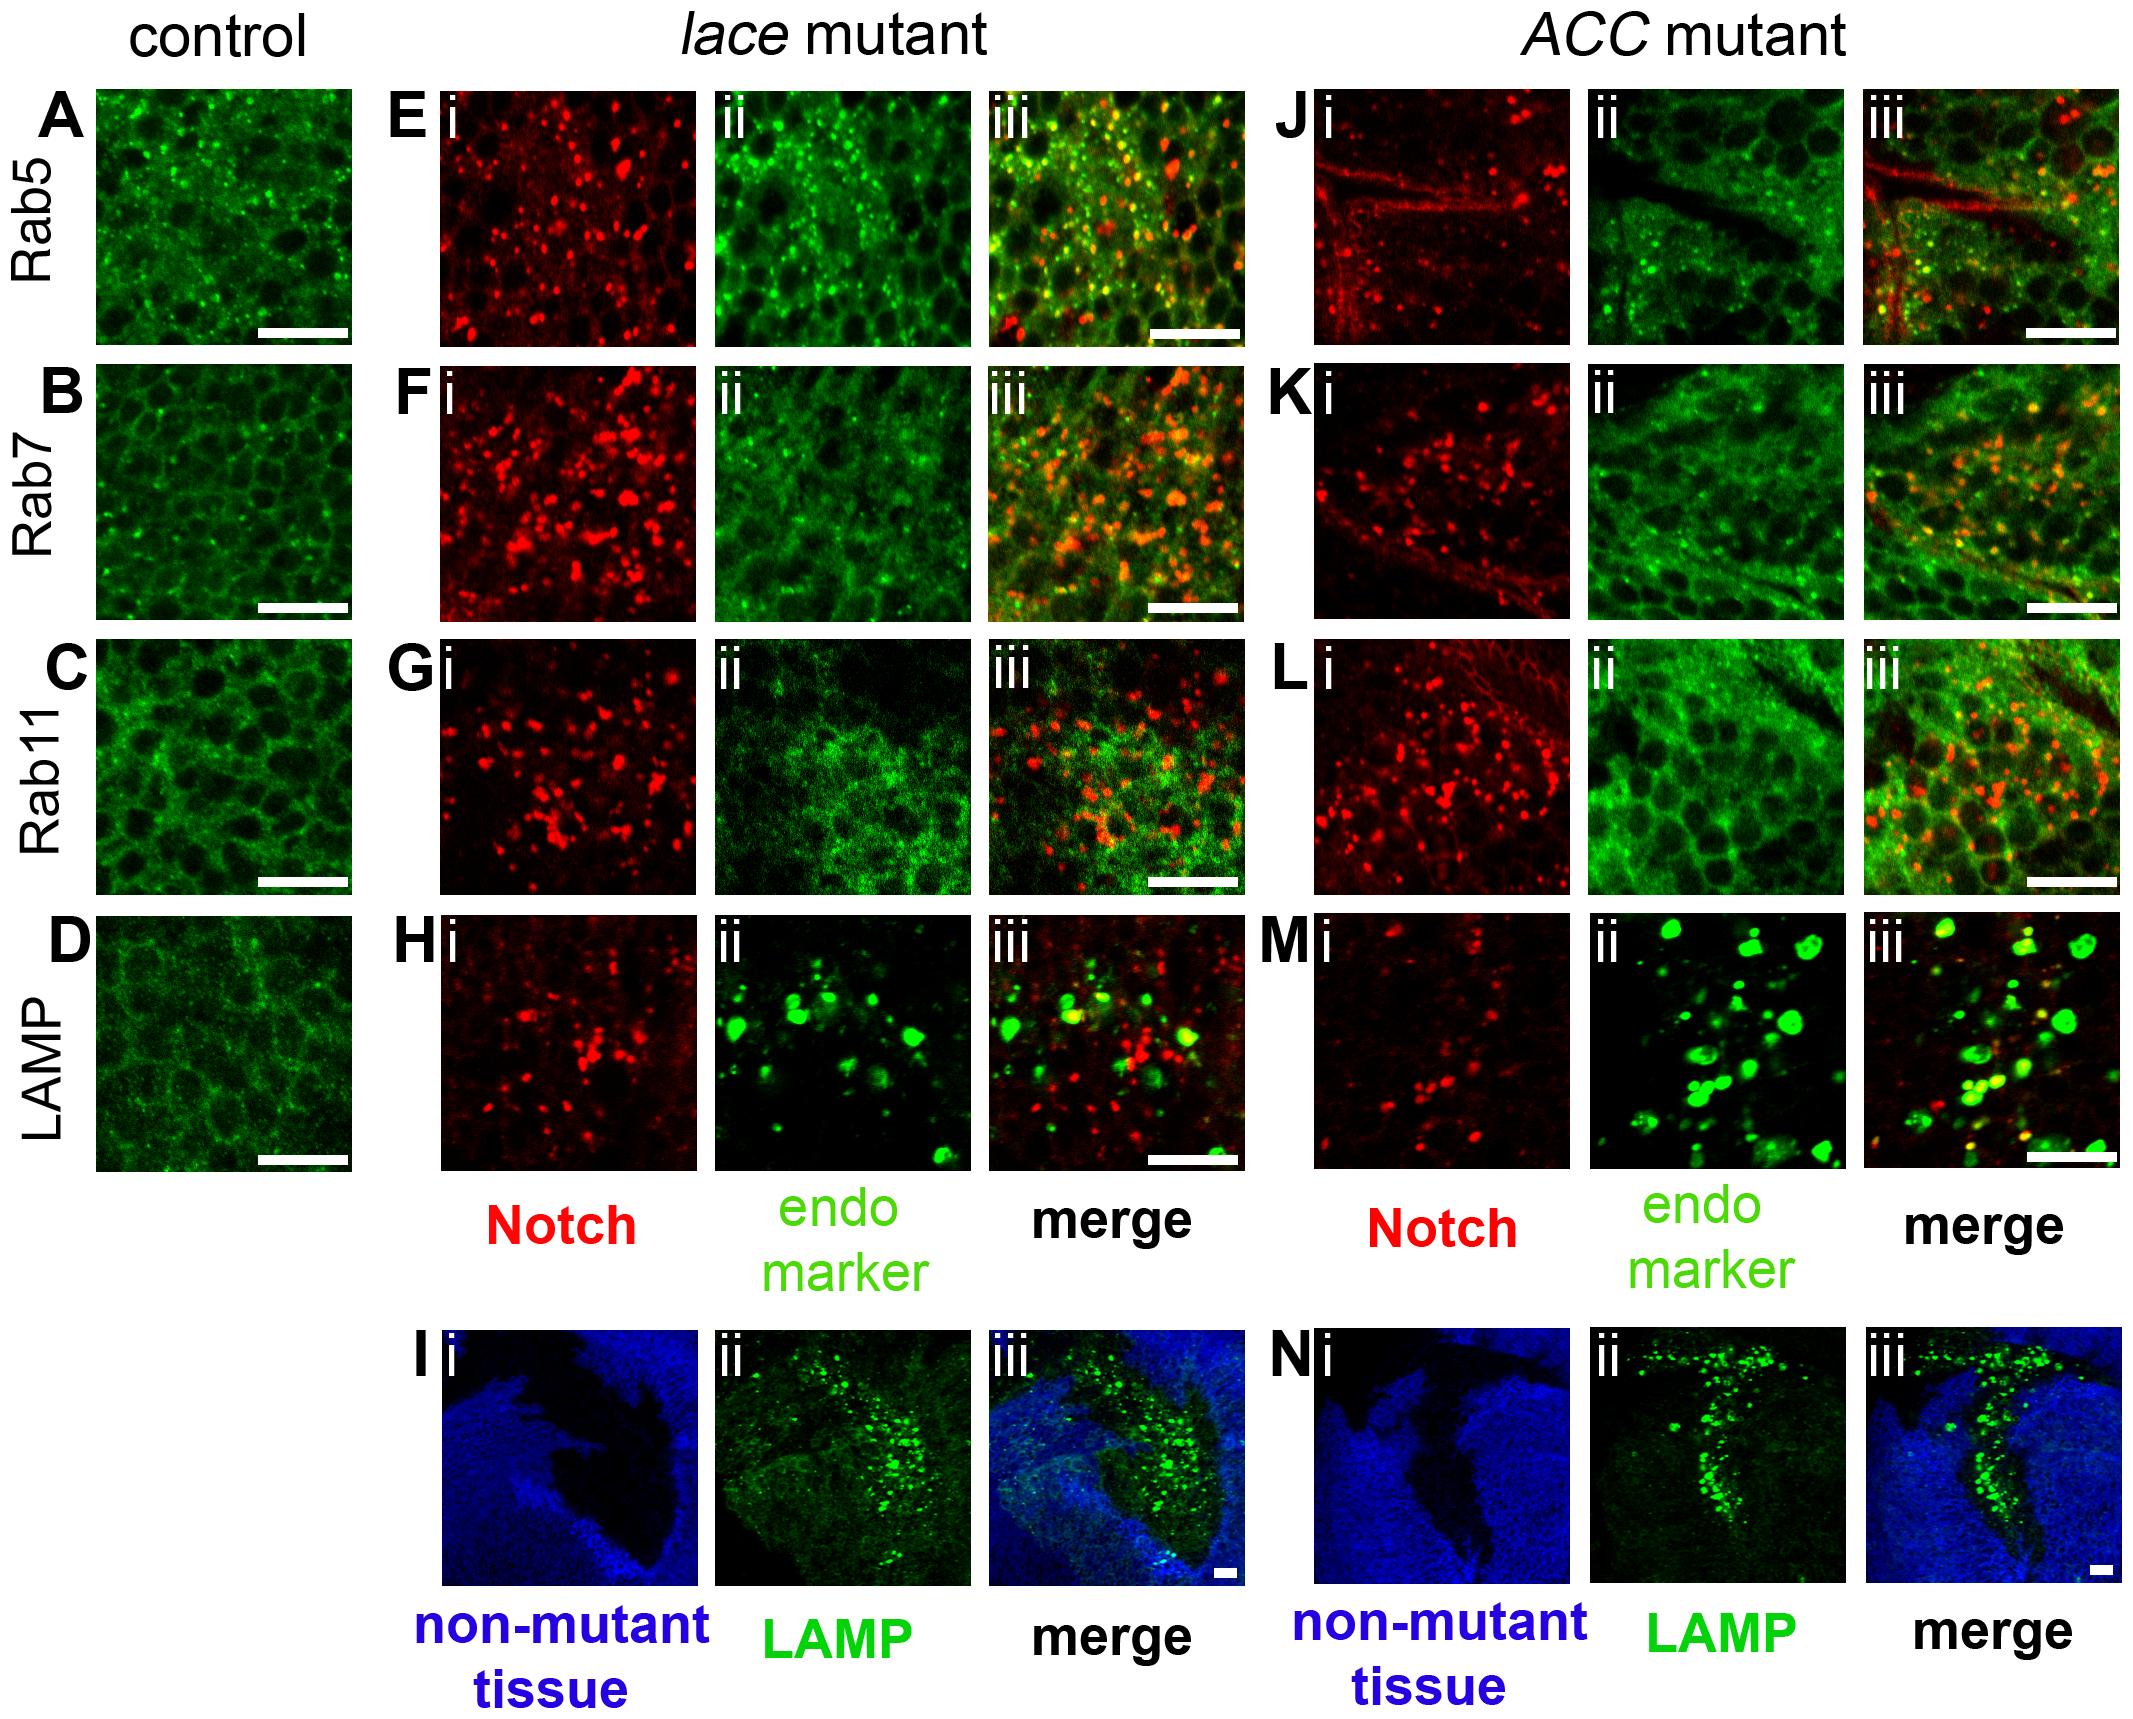 Colocalization of Notch with endosomal and lysosomal markers in <i>lace</i> and <i>ACC</i> mutant tissue clones.